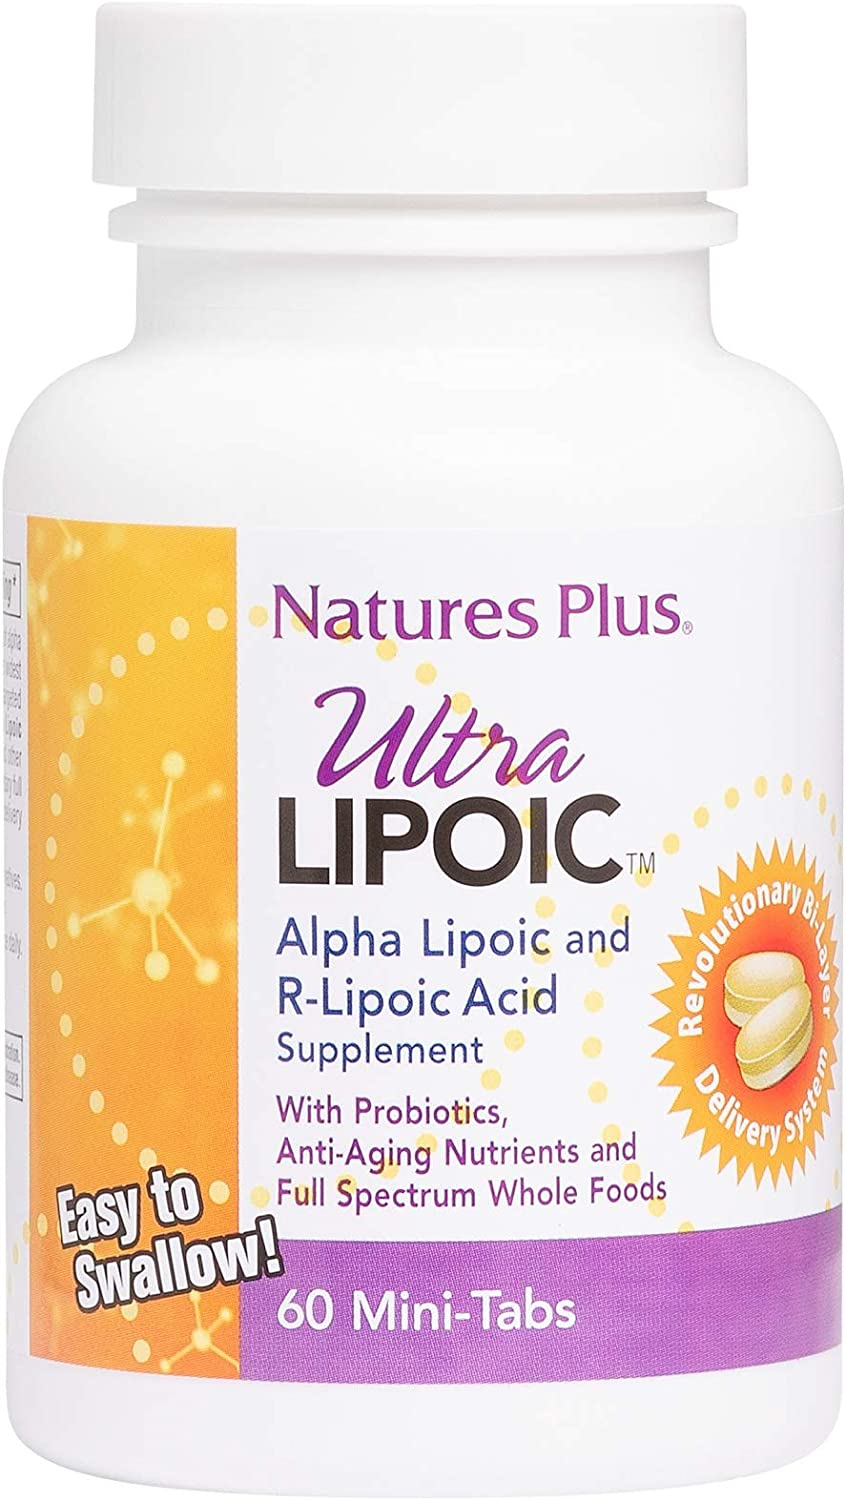 NaturesPlus Ultra Lipoic Bi-Layered Mini-Tabs - 500 mg Alpha Lipoic Acid, 60 Easy to Swallow Mini Tablets - Antioxidants, Probiotics, Anti-Aging Nutrients & Whole Foods - Gluten-Free - 30 Servings